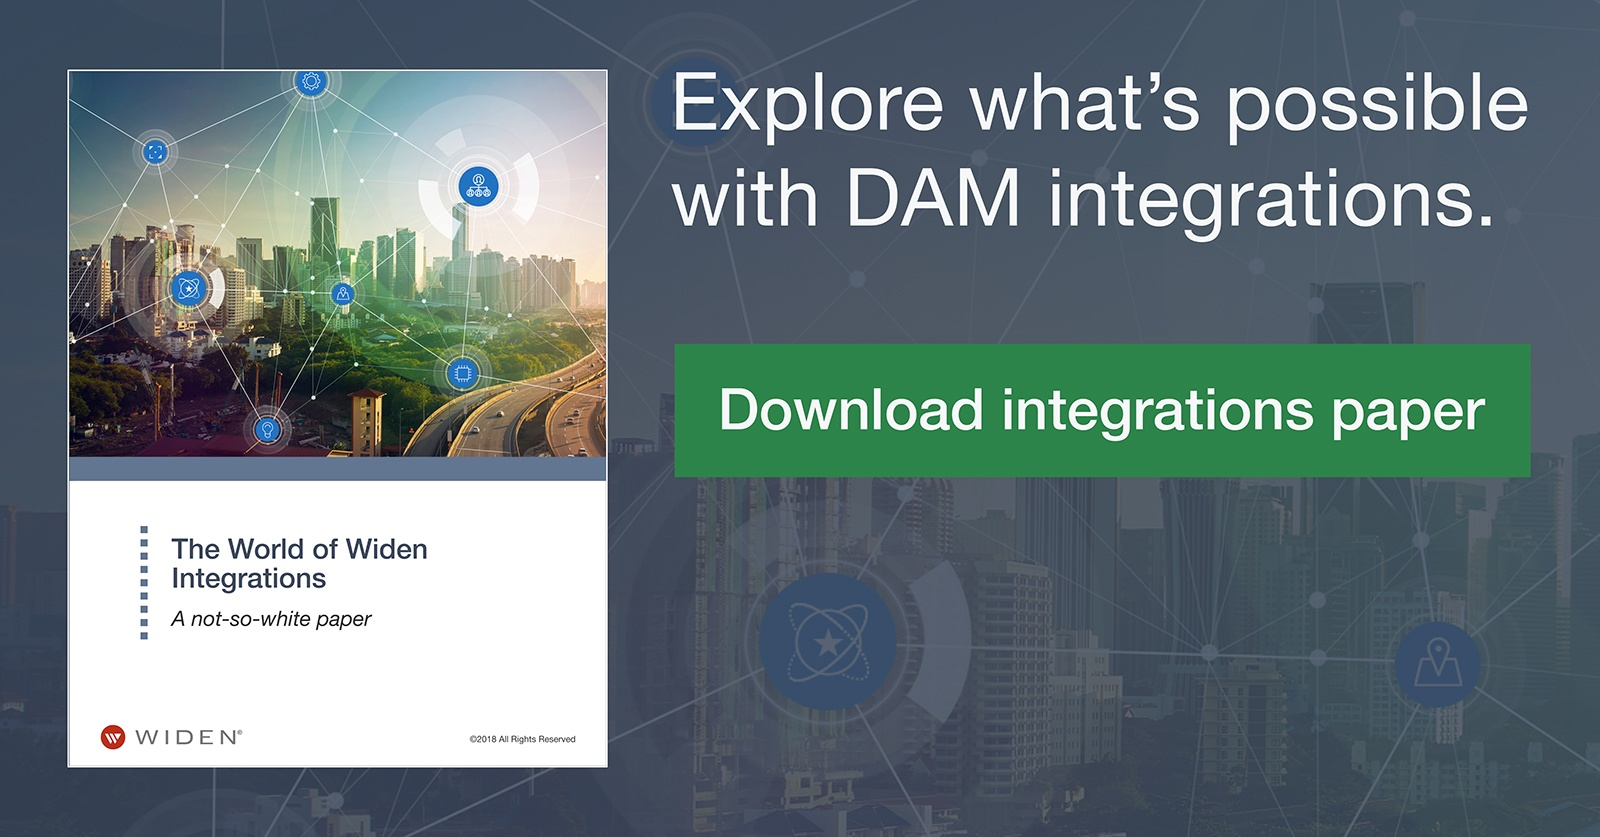 Explore what's possible with digital asset management integrations with CMS, PIM, and other tools.